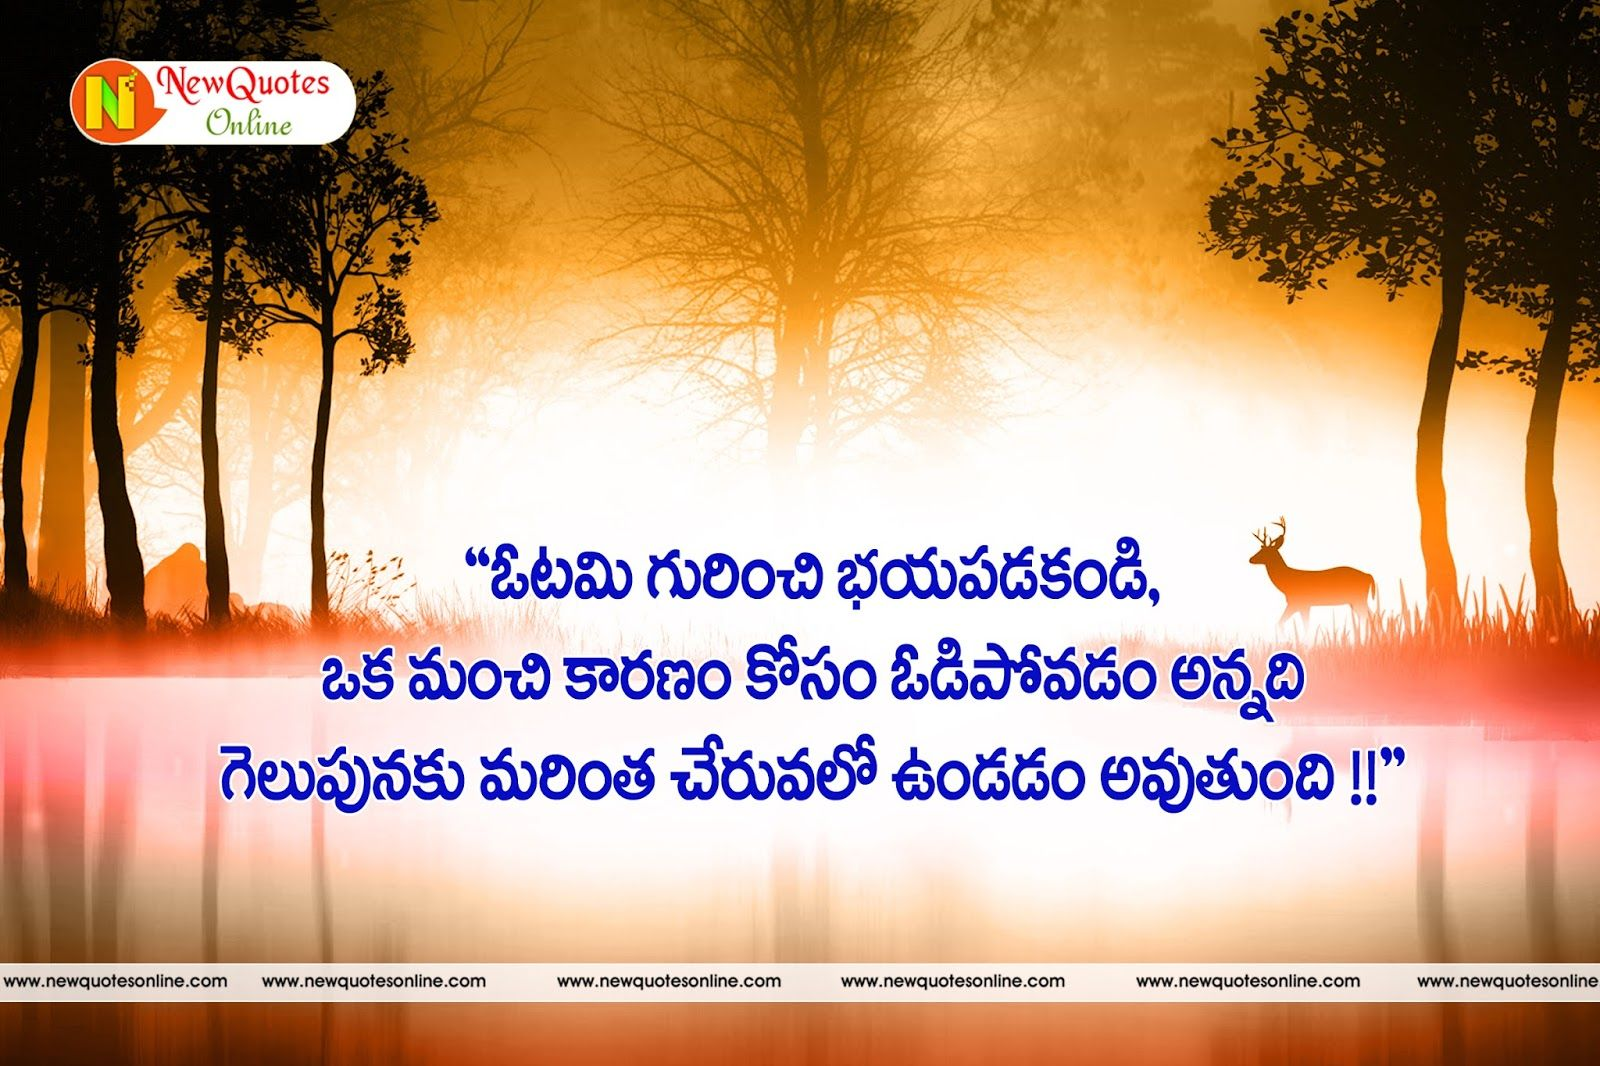 Best 25 Action Quotes Ideas On Pinterest: Best 25+ Telugu Inspirational Quotes Ideas On Pinterest